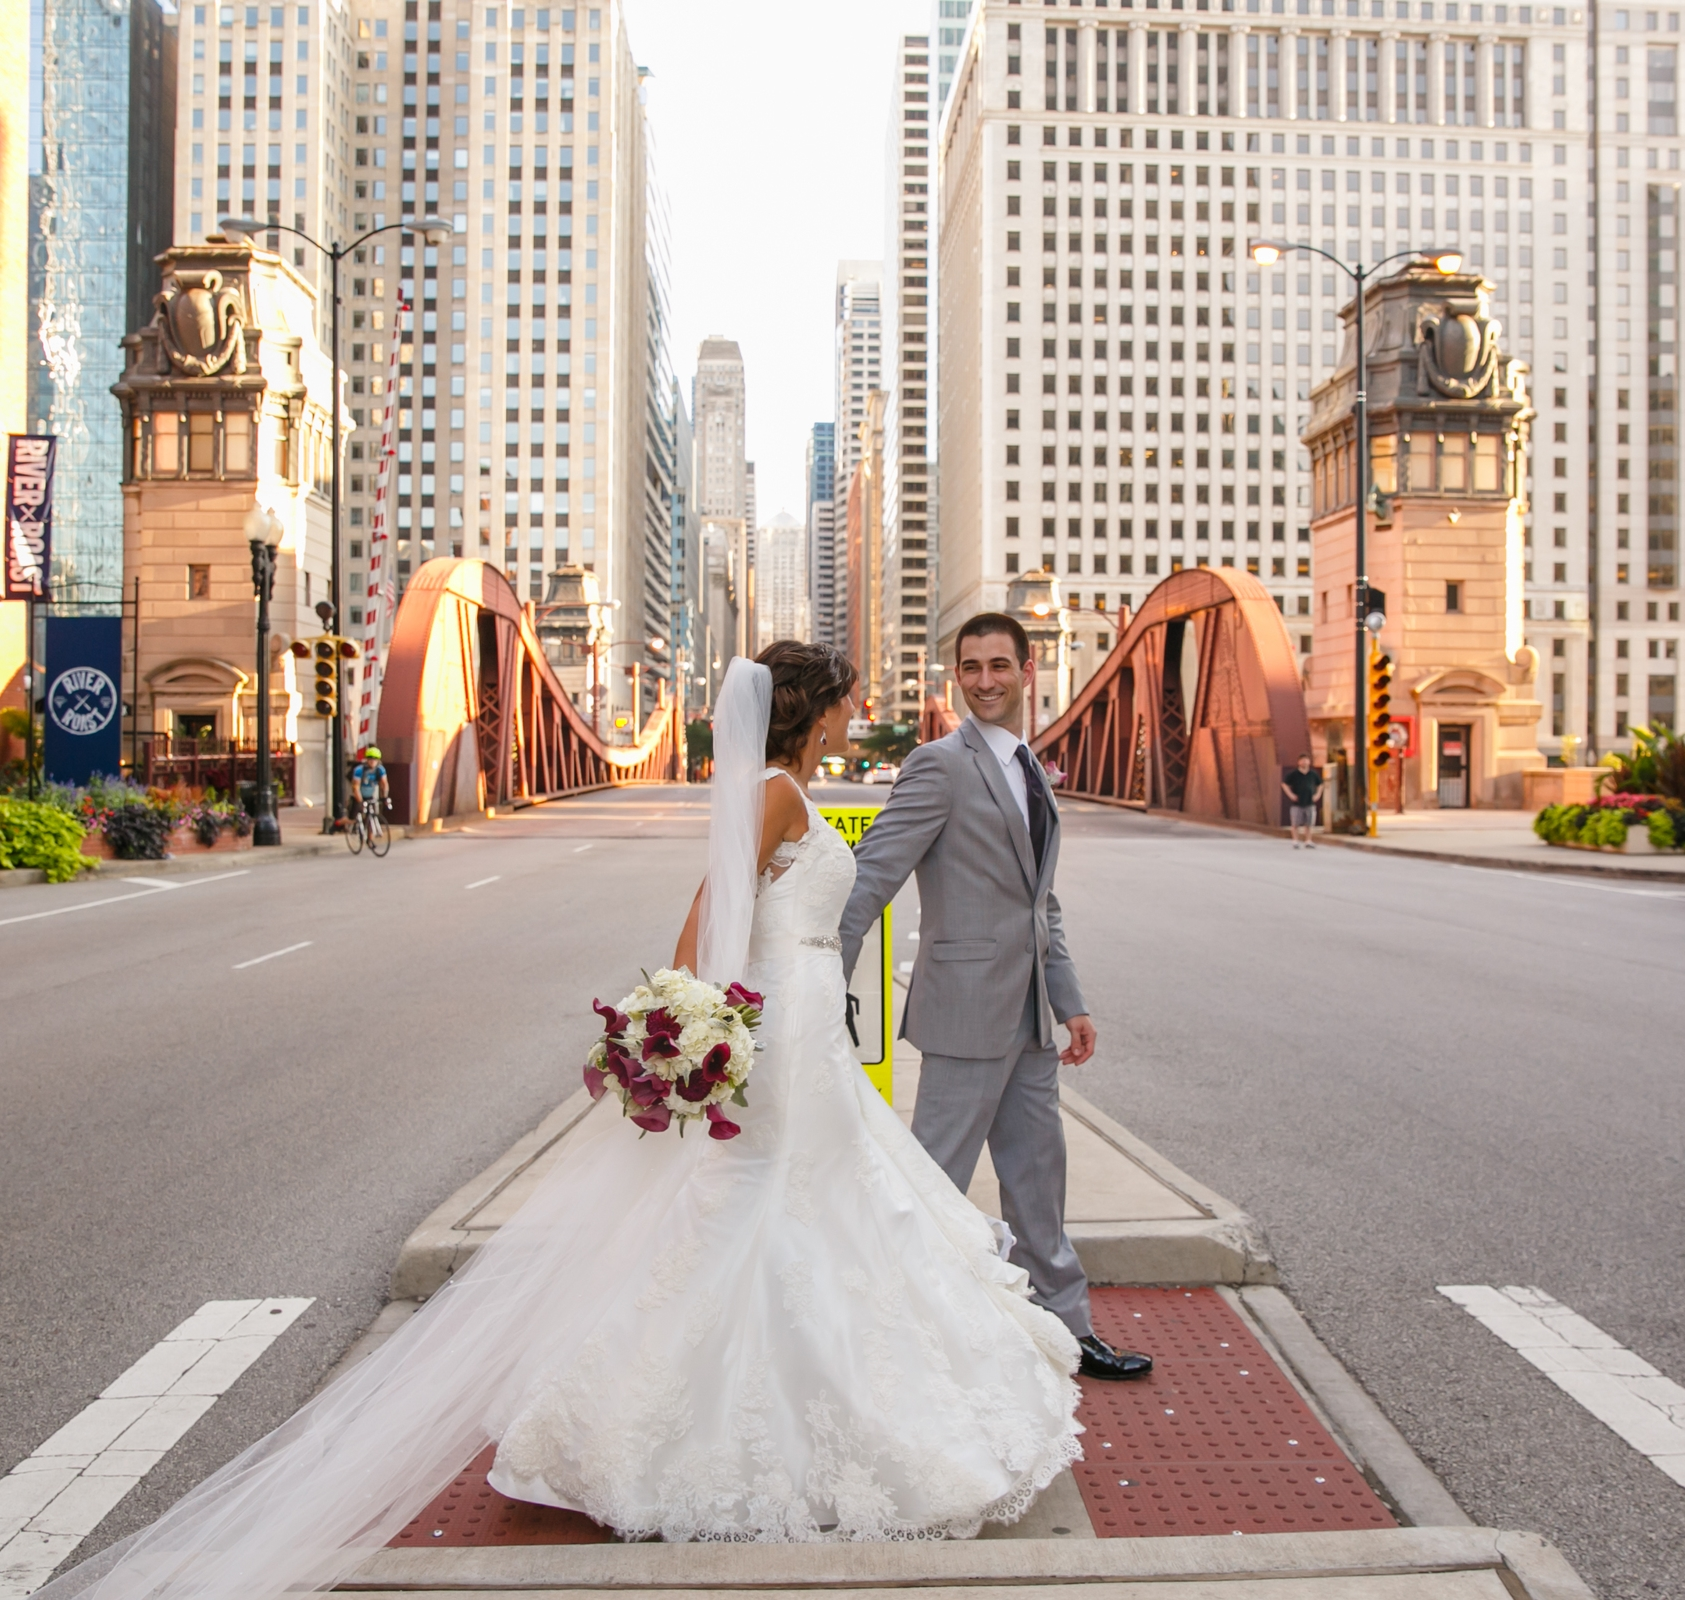 Bride and groom downtown wedding